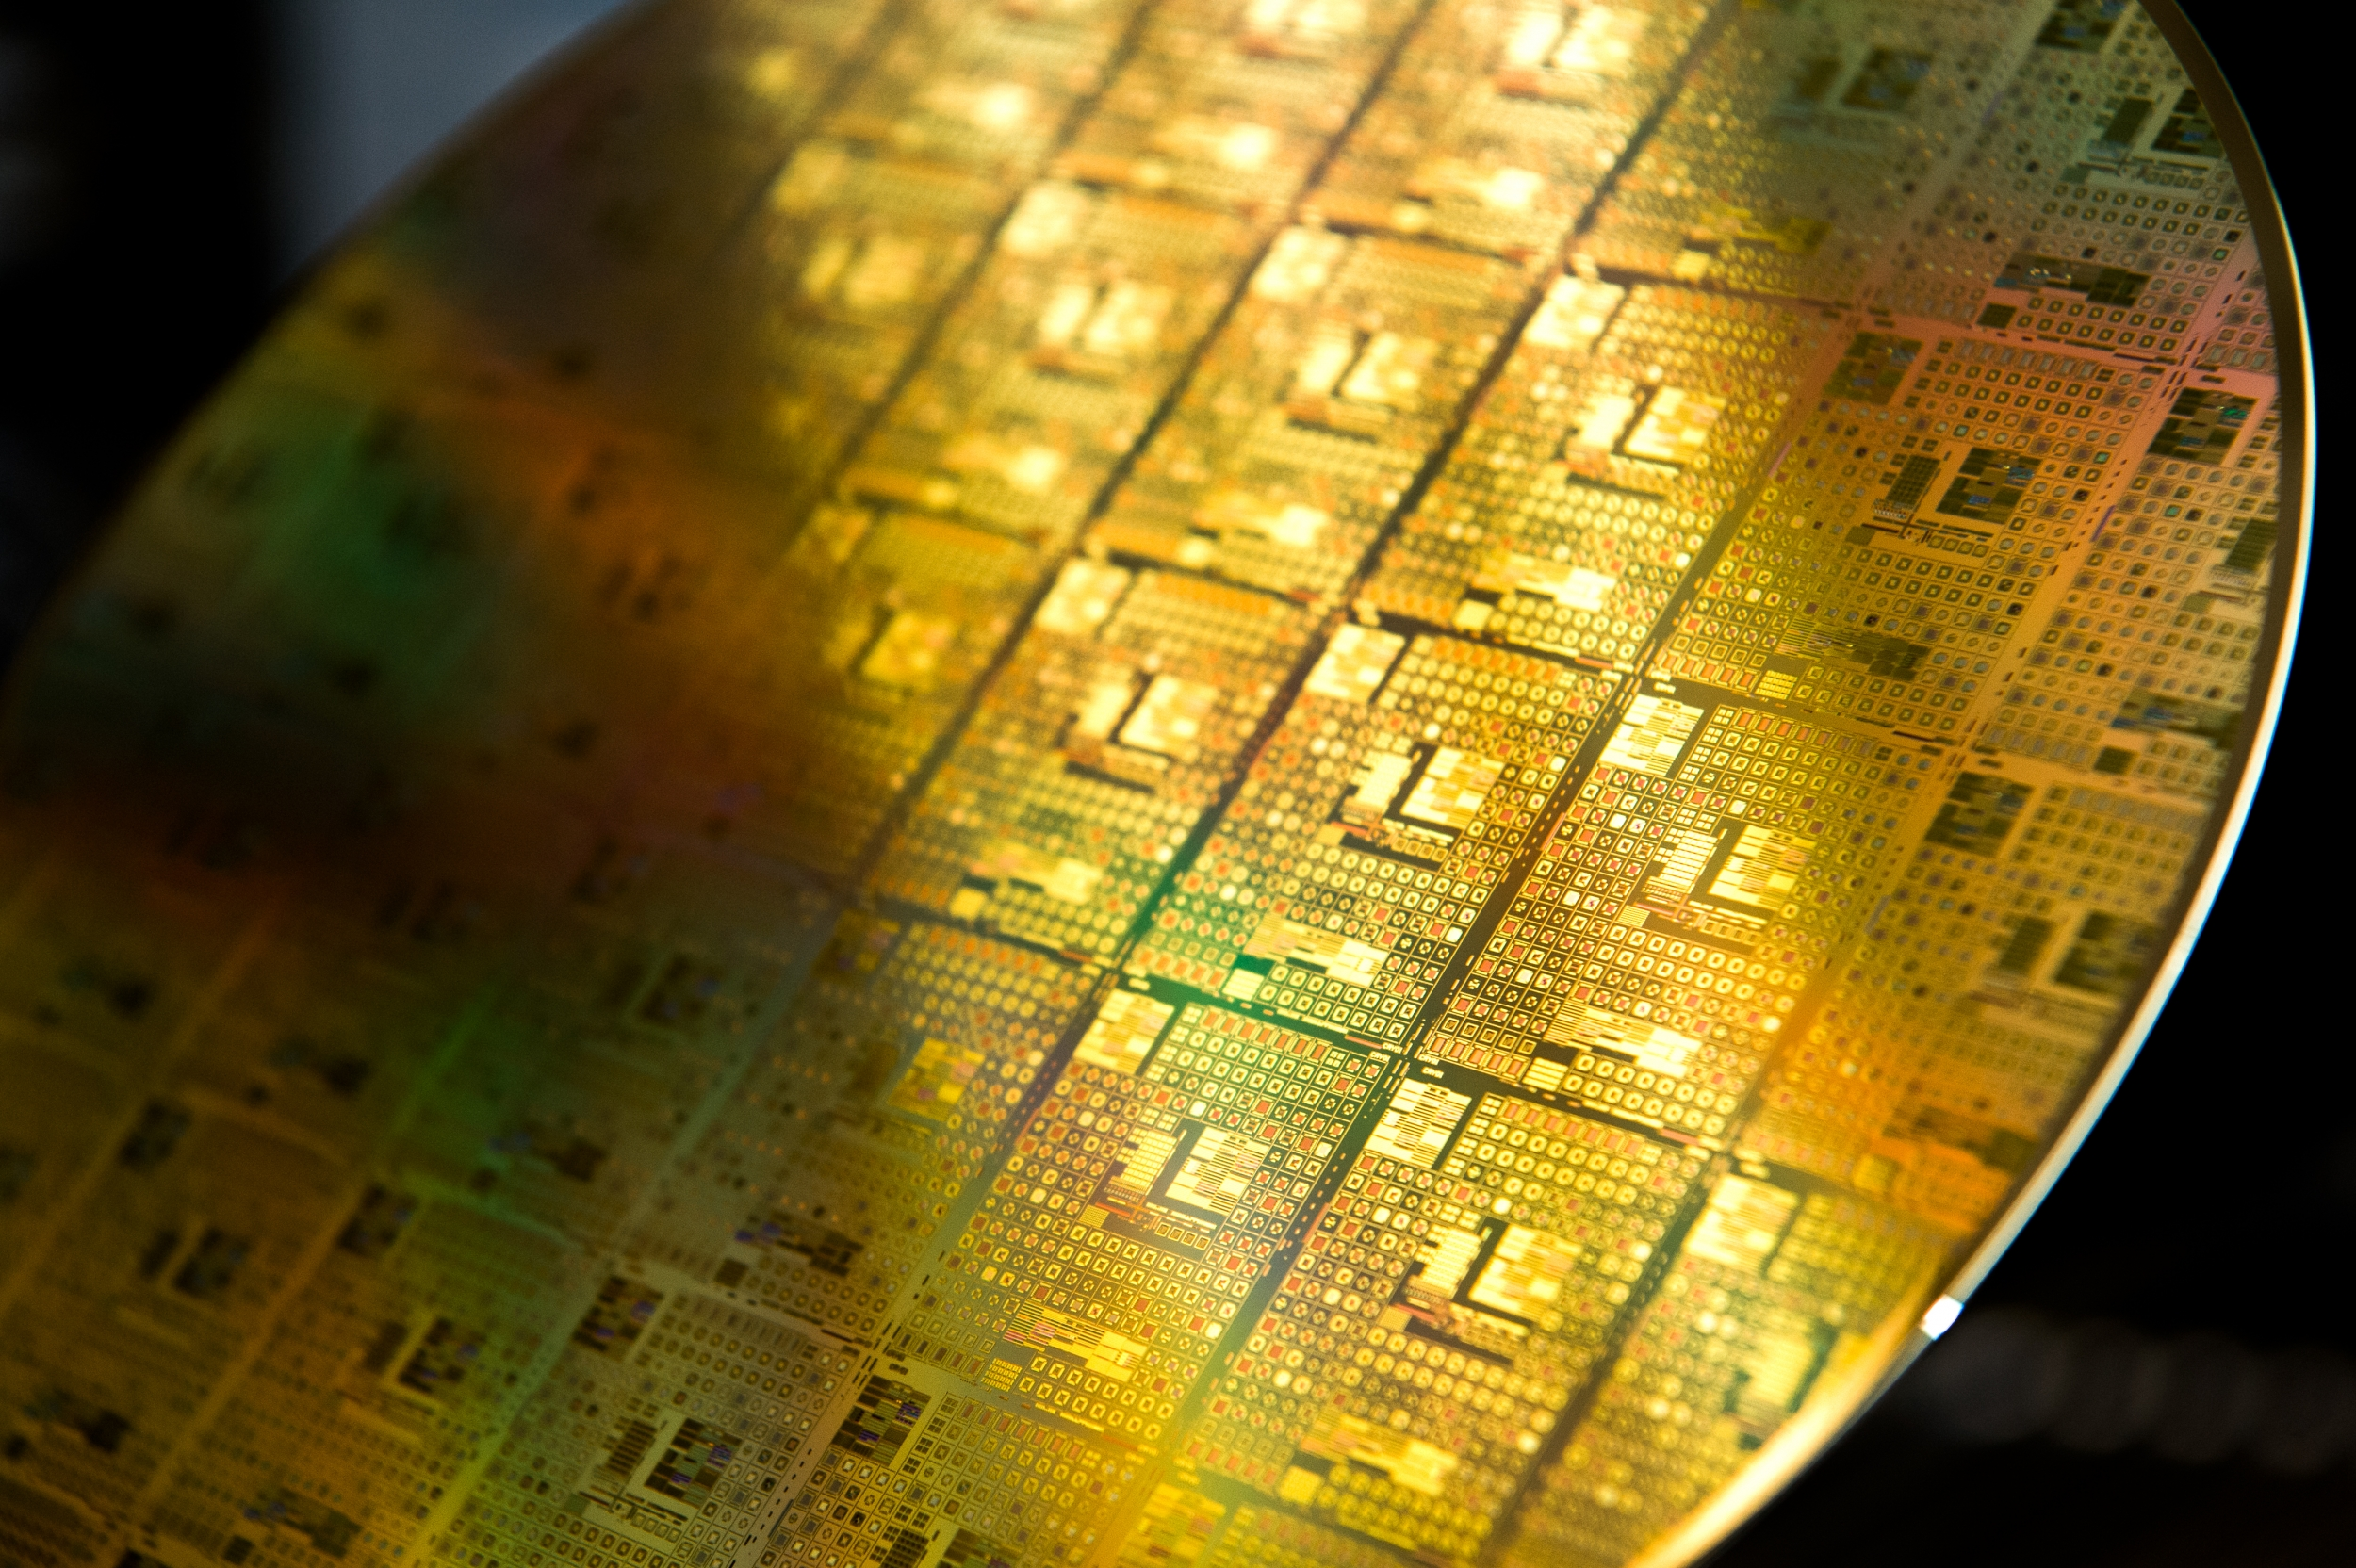 A fully depleted silicon-on-insulator complementary metal oxide semiconductor (FD-SOI CMOS) circuit wafer.